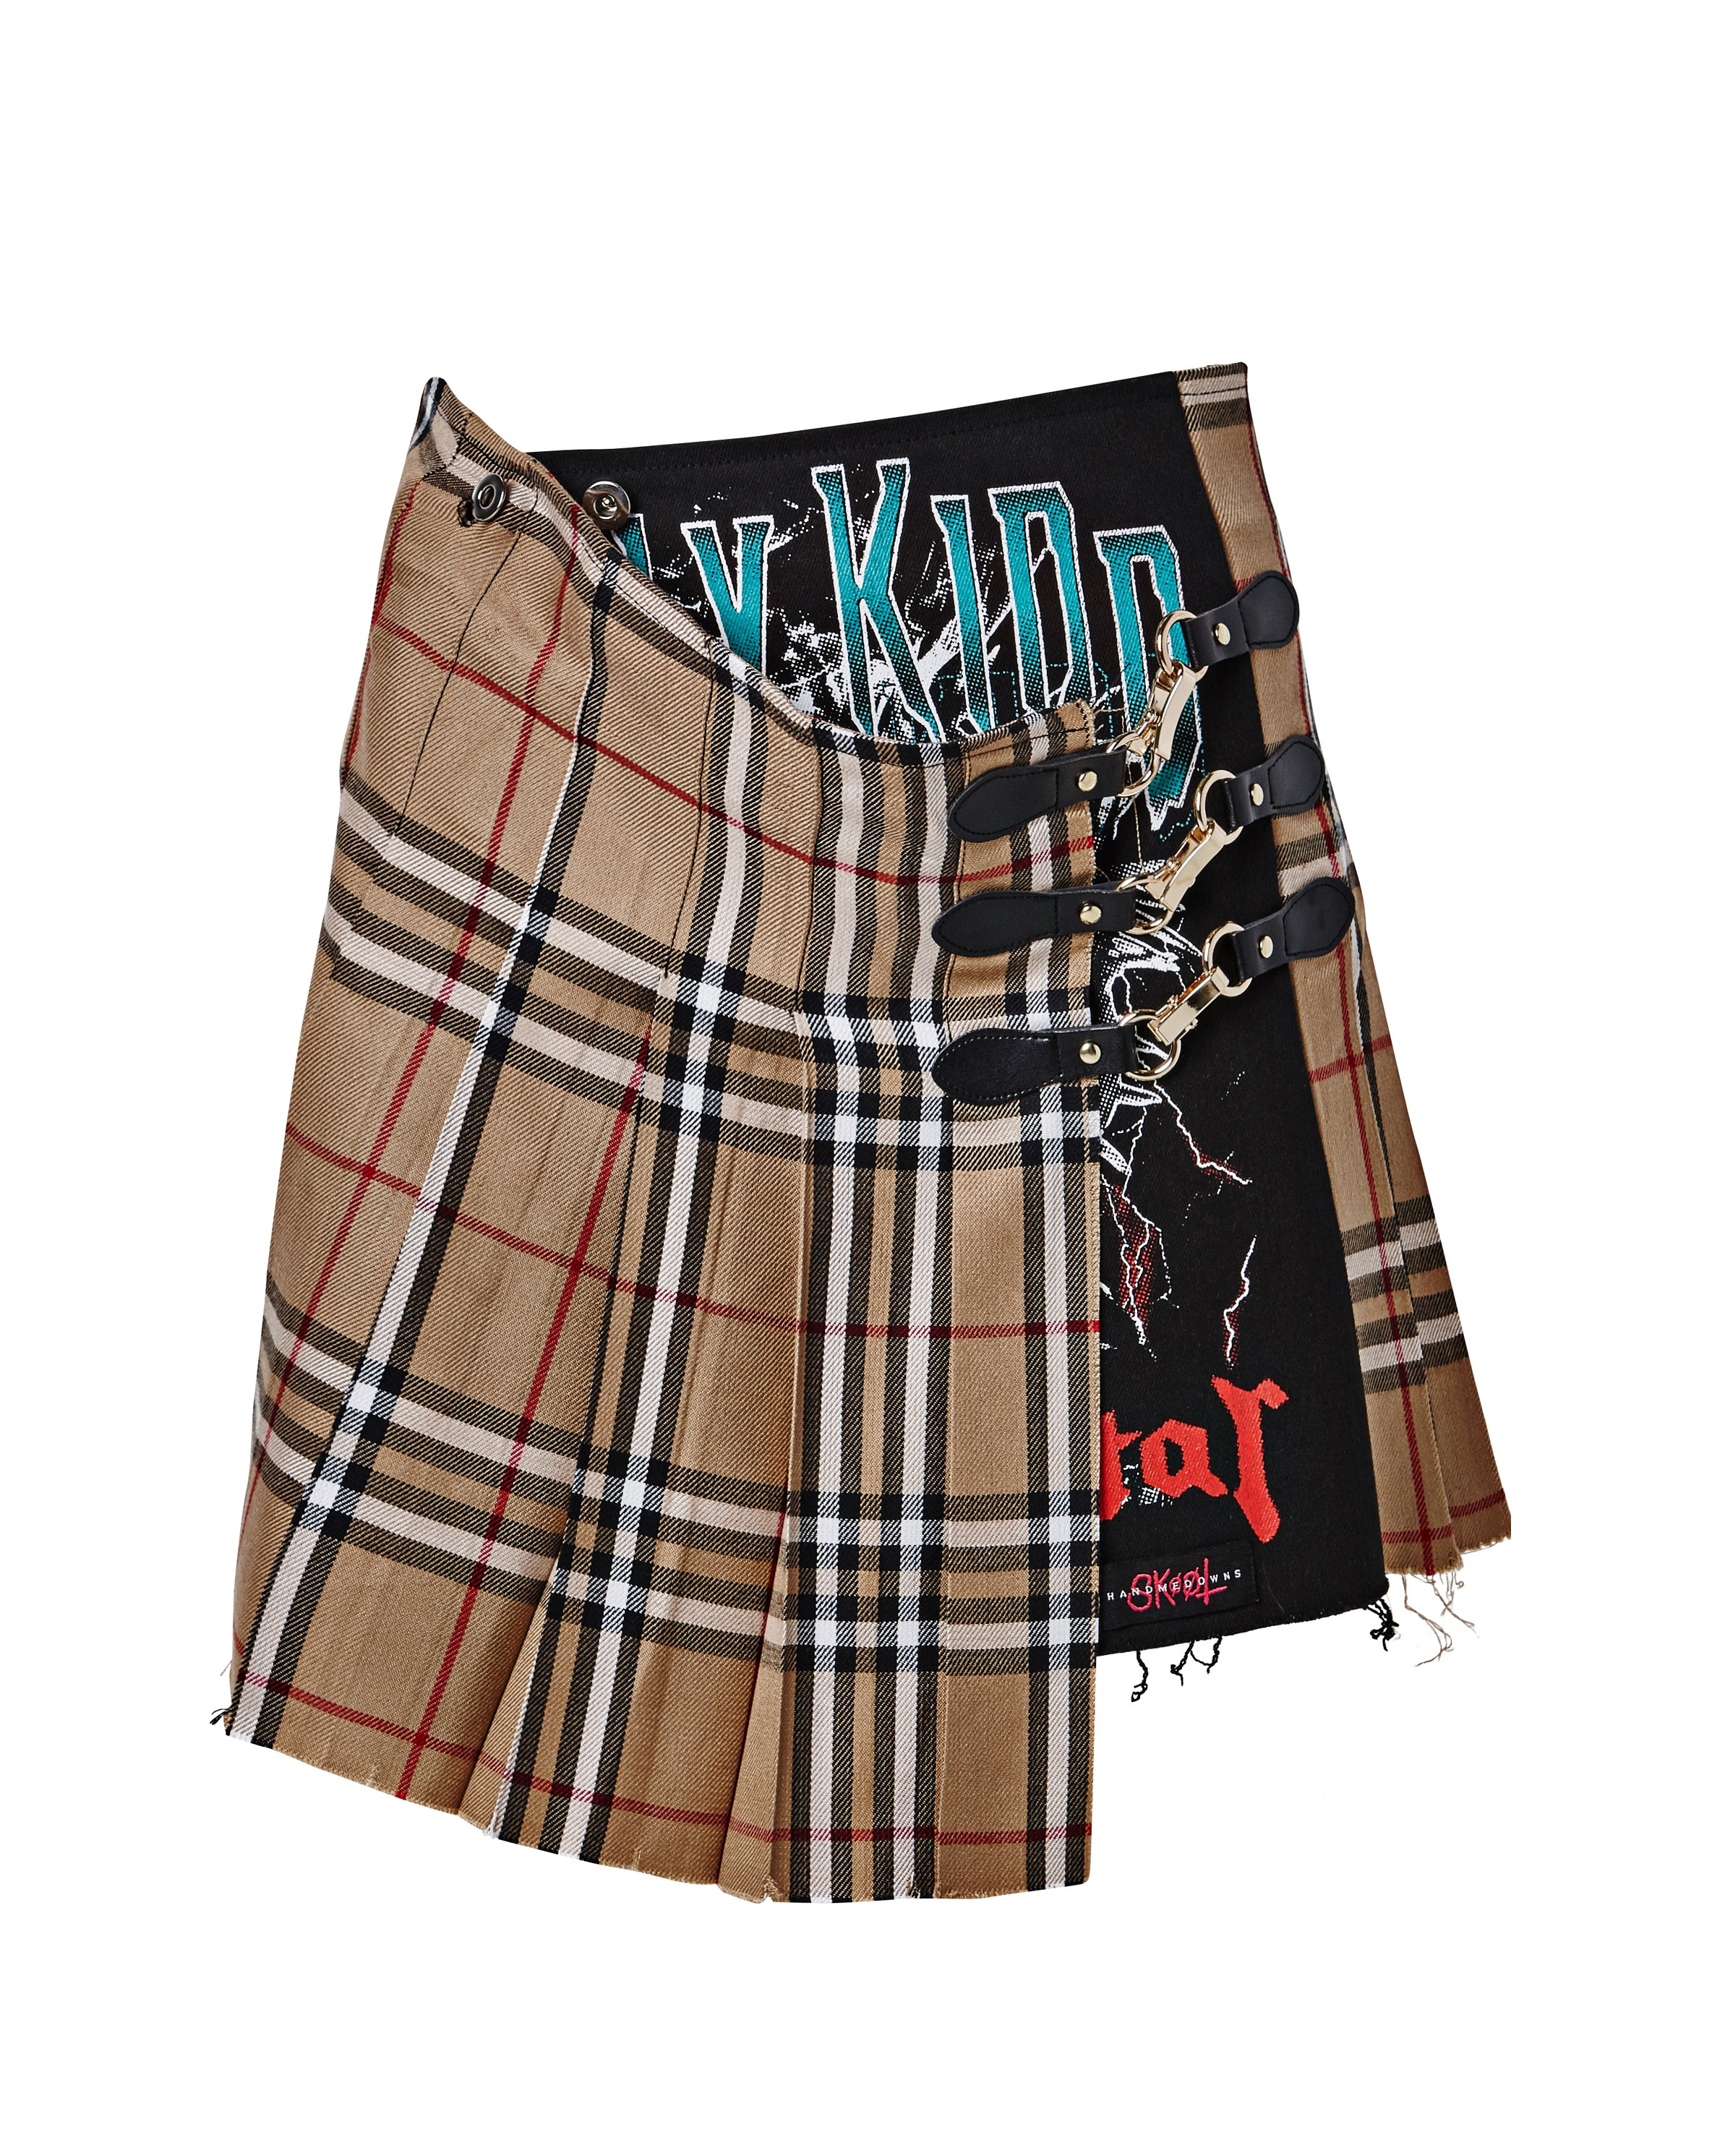 Ugly Kidd Skirt Beige